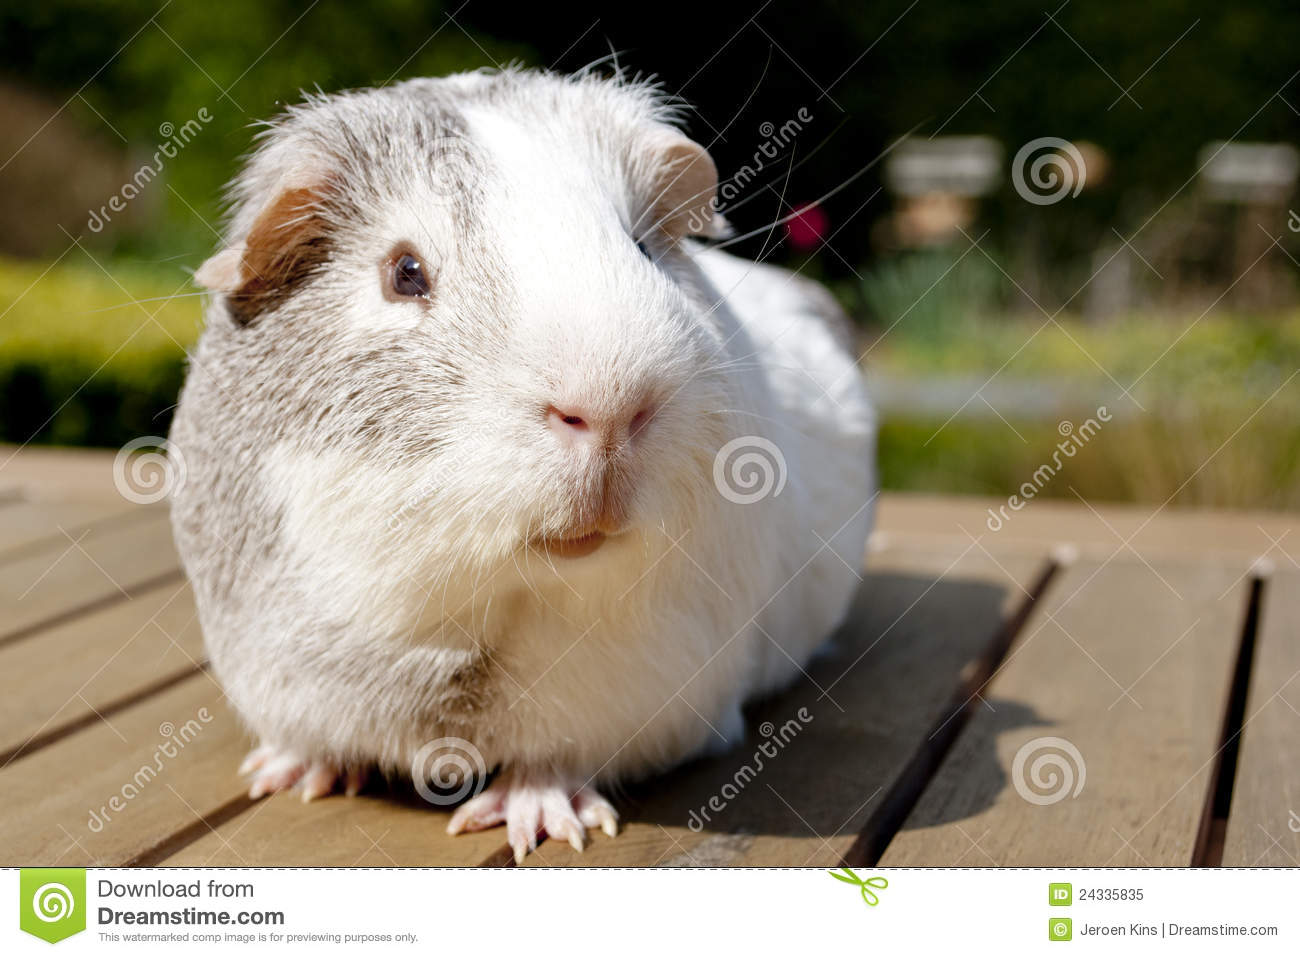 Guinea pig in garden royalty free stock photo image for Guinea pig pictures free